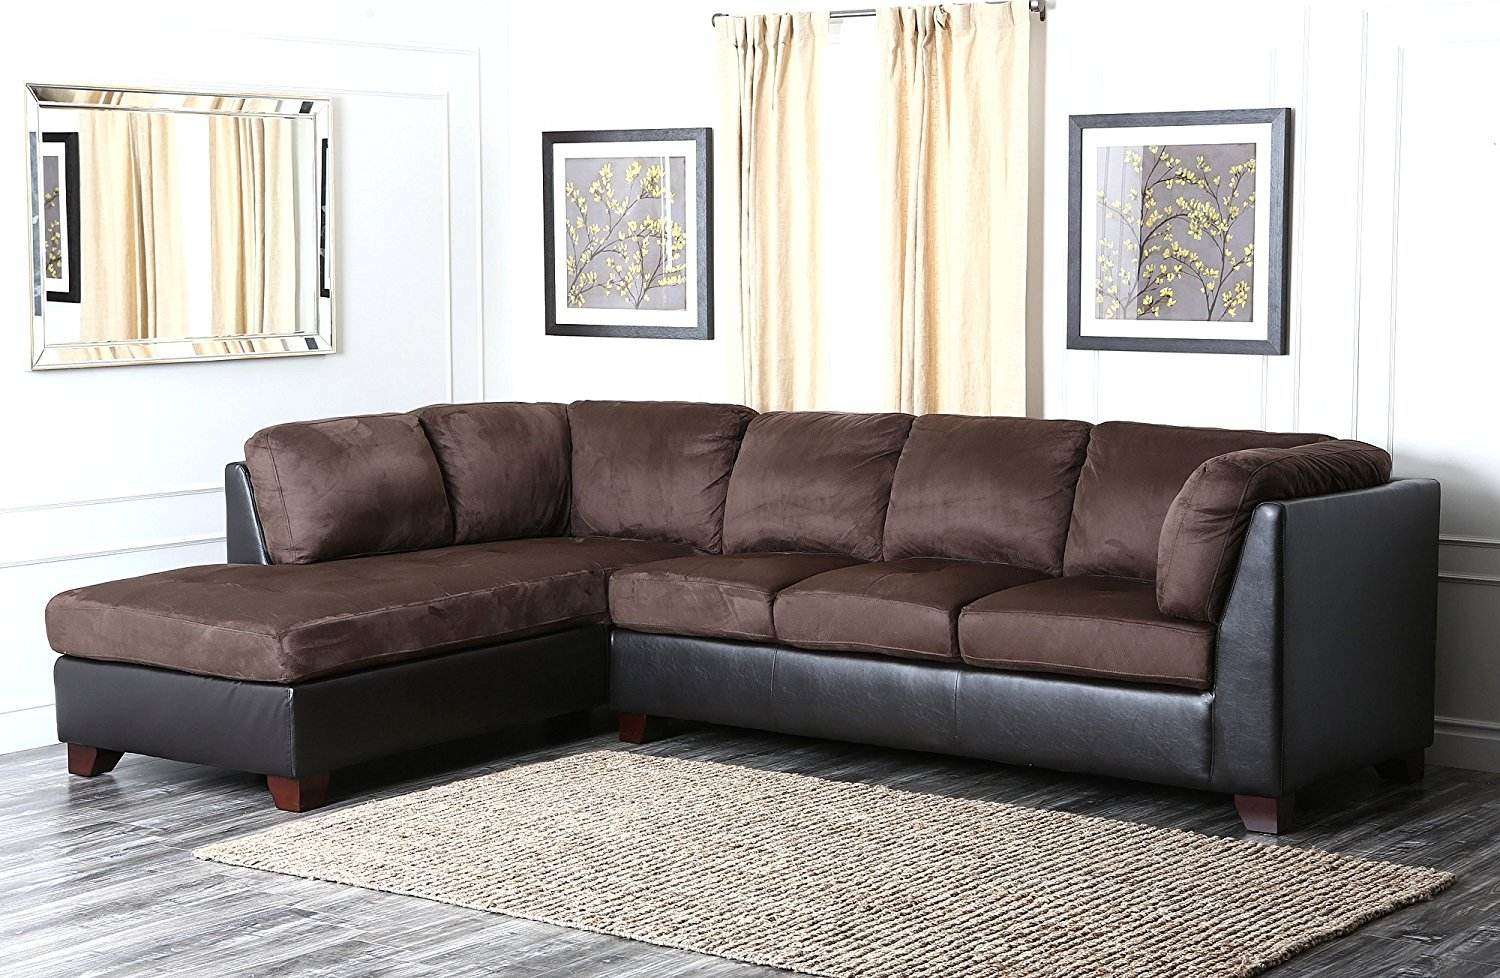 rooms to go santa monica sofa reviews palliser gamma recliner 15 collection of abbyson living charlotte beige sectional